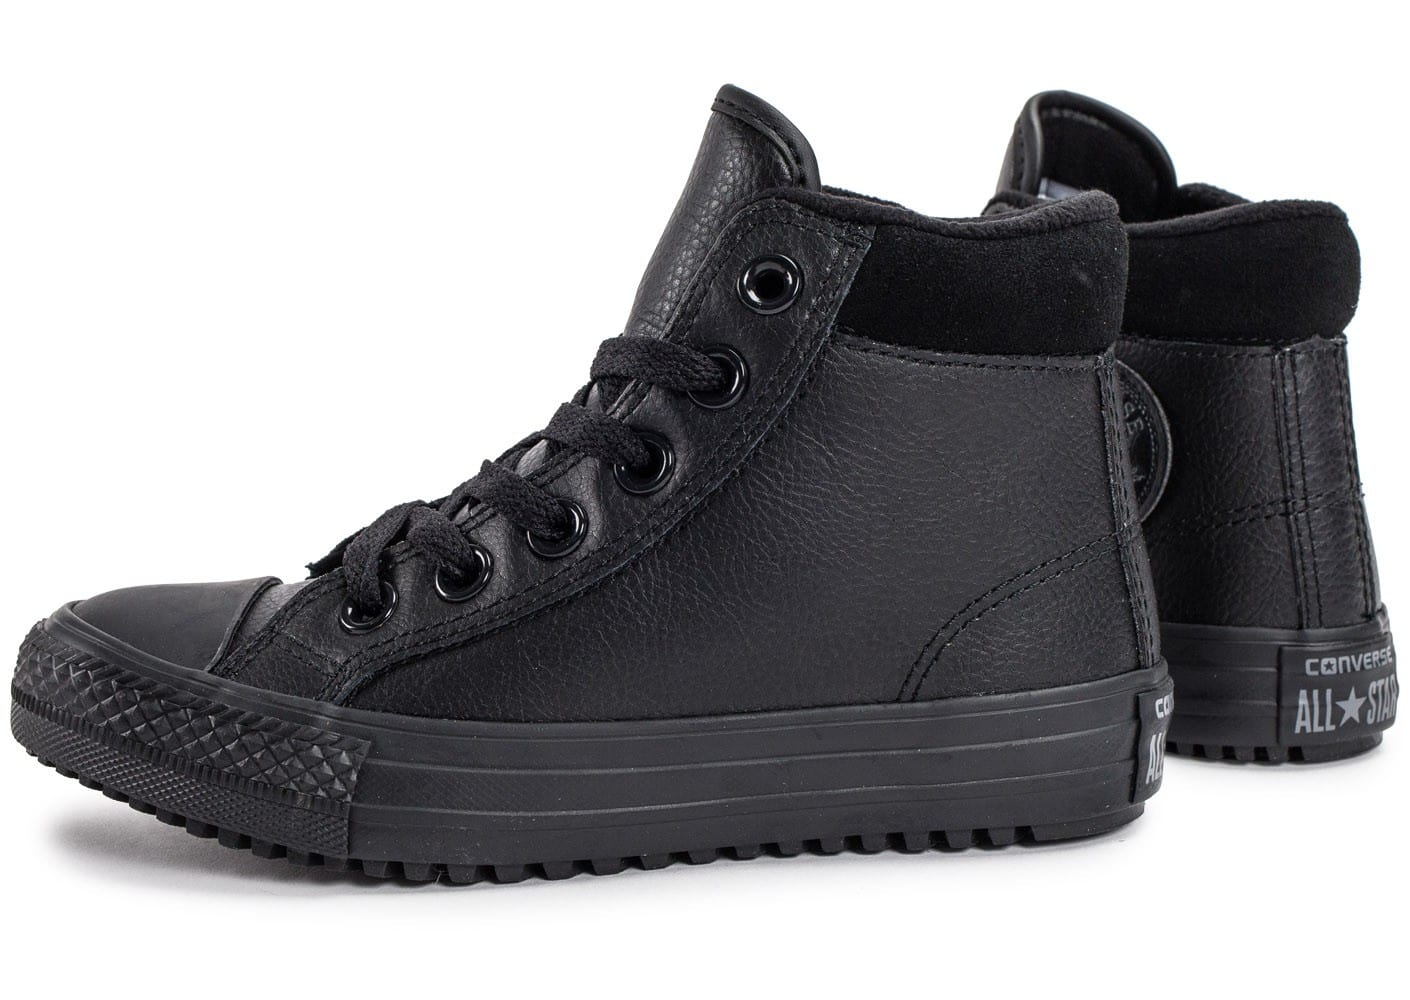 Star All Chaussures Pc Boot Chuck Converse Enfant Taylor gbv6yIYf7